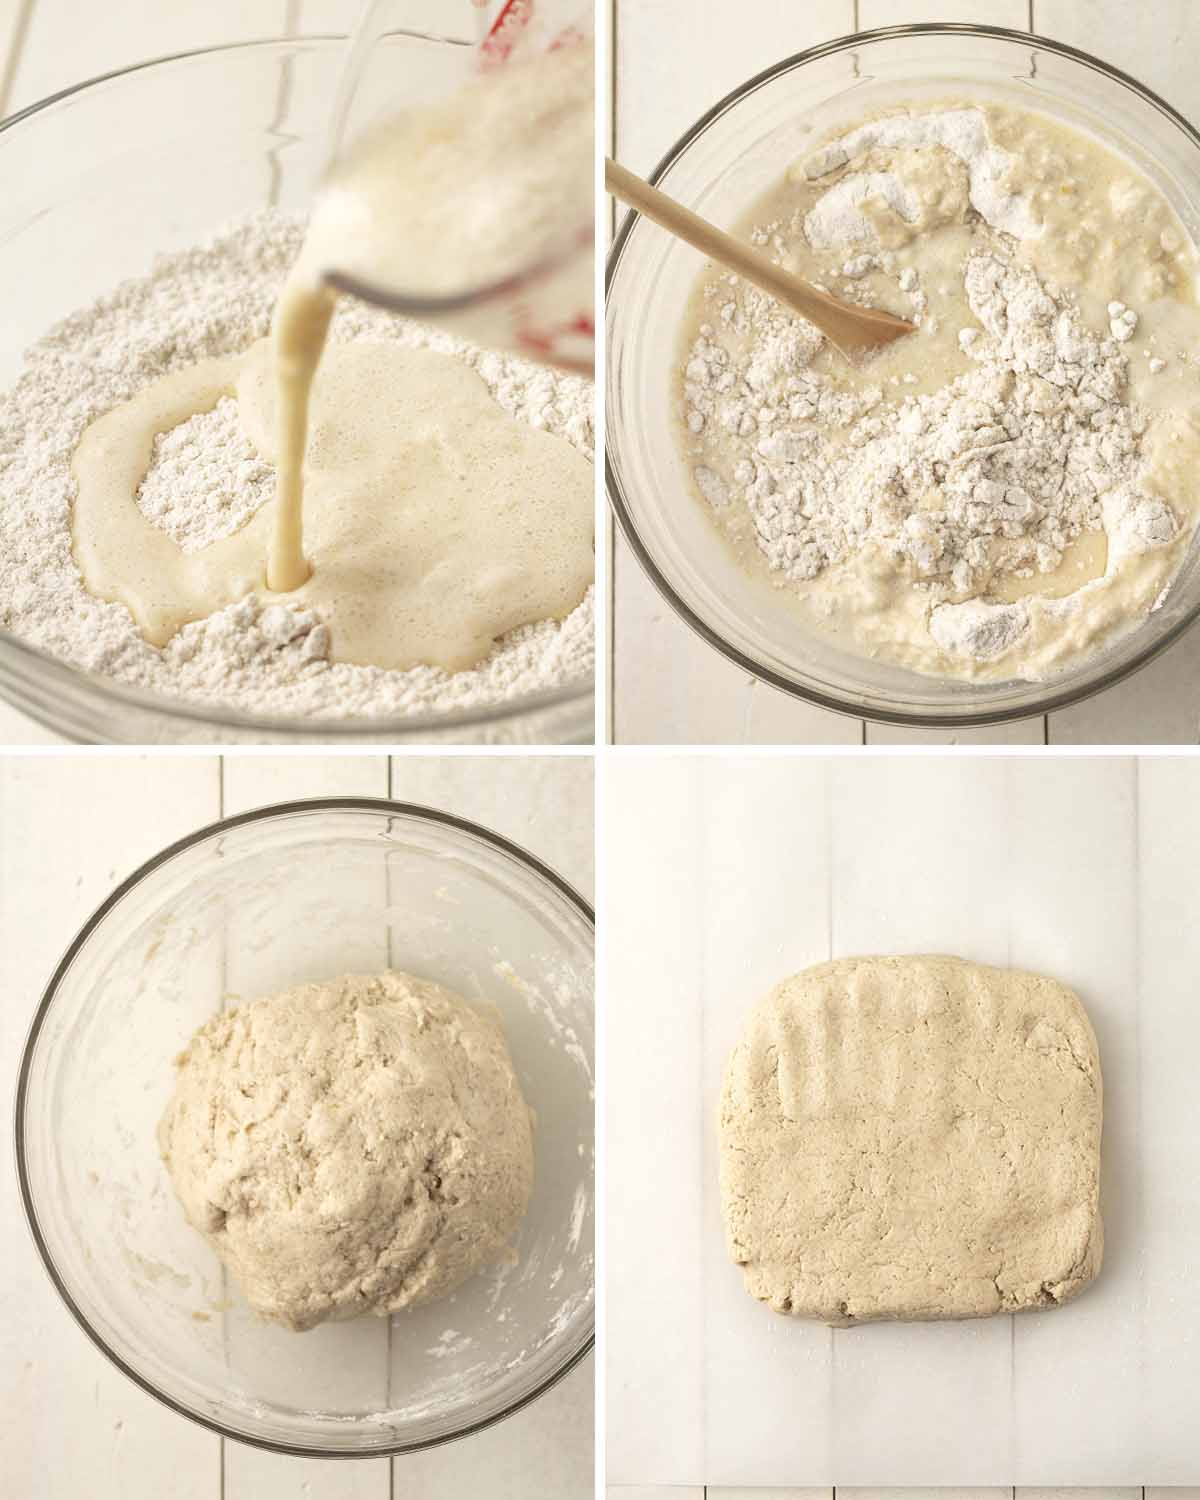 A collage of four images showing the steps to make the dough for gluten free vegan cinnamon rolls.